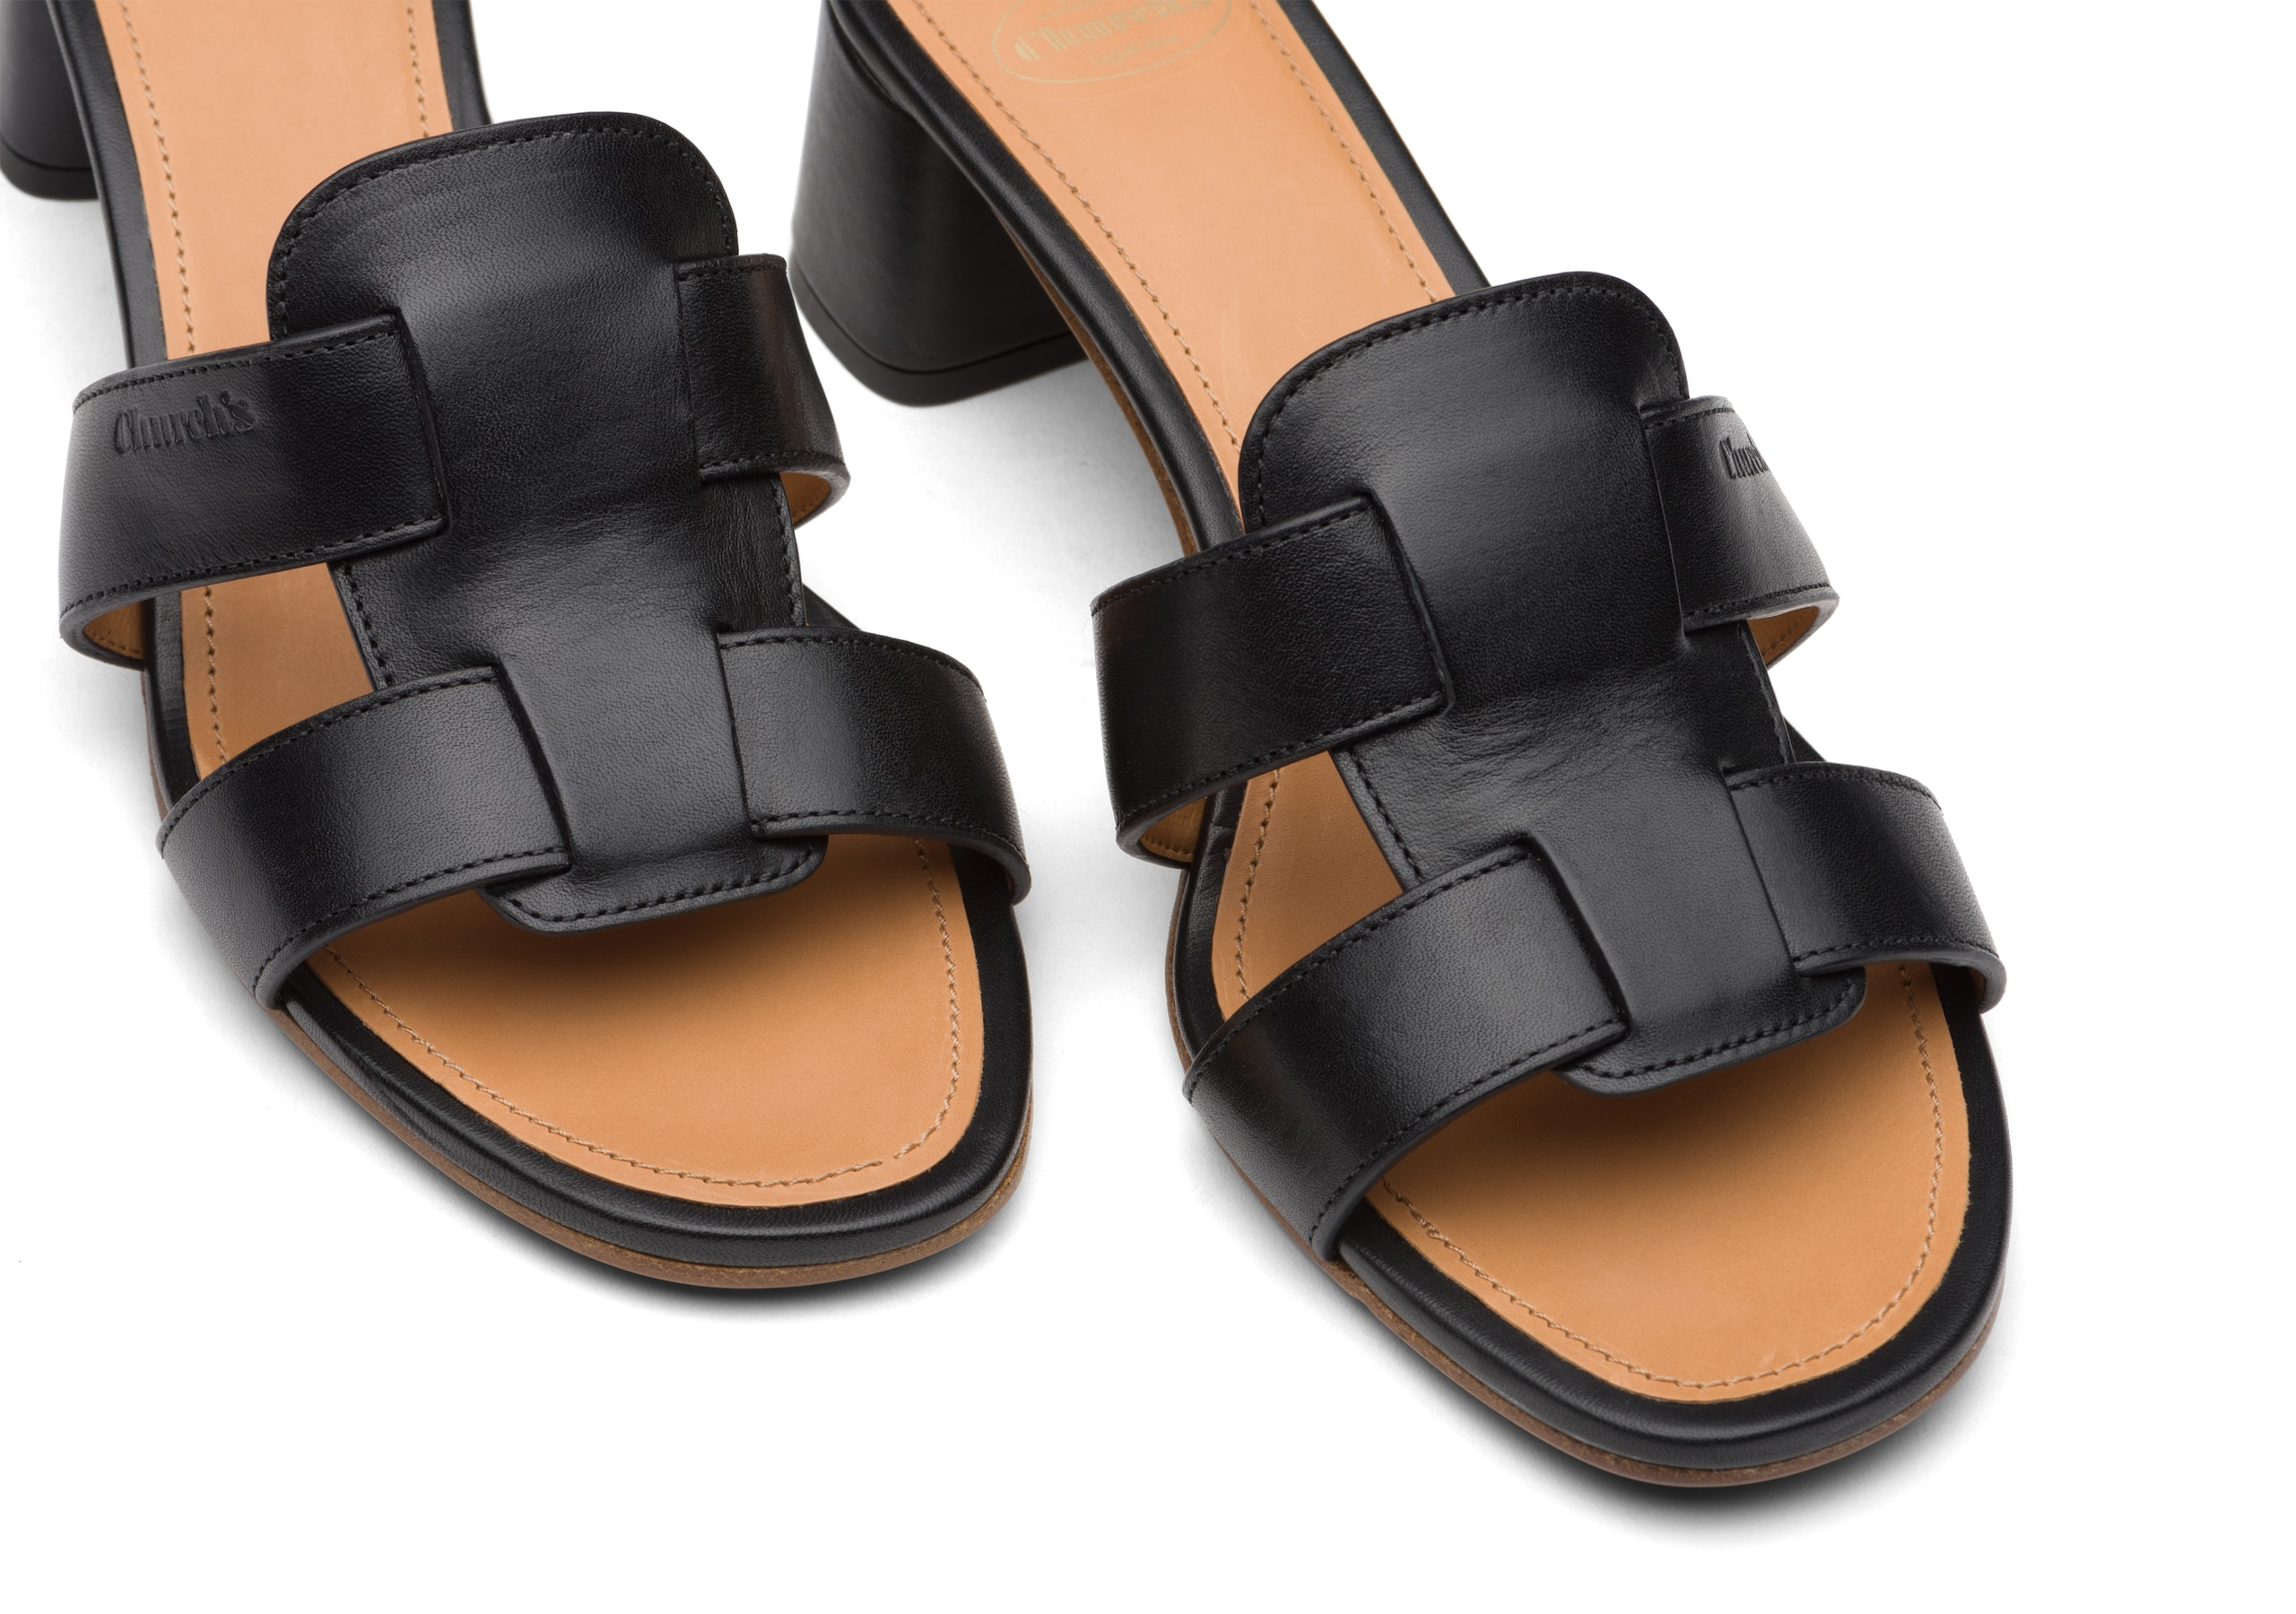 Dee dee 45 Church's Monteria Calf Heeled Sandal Black